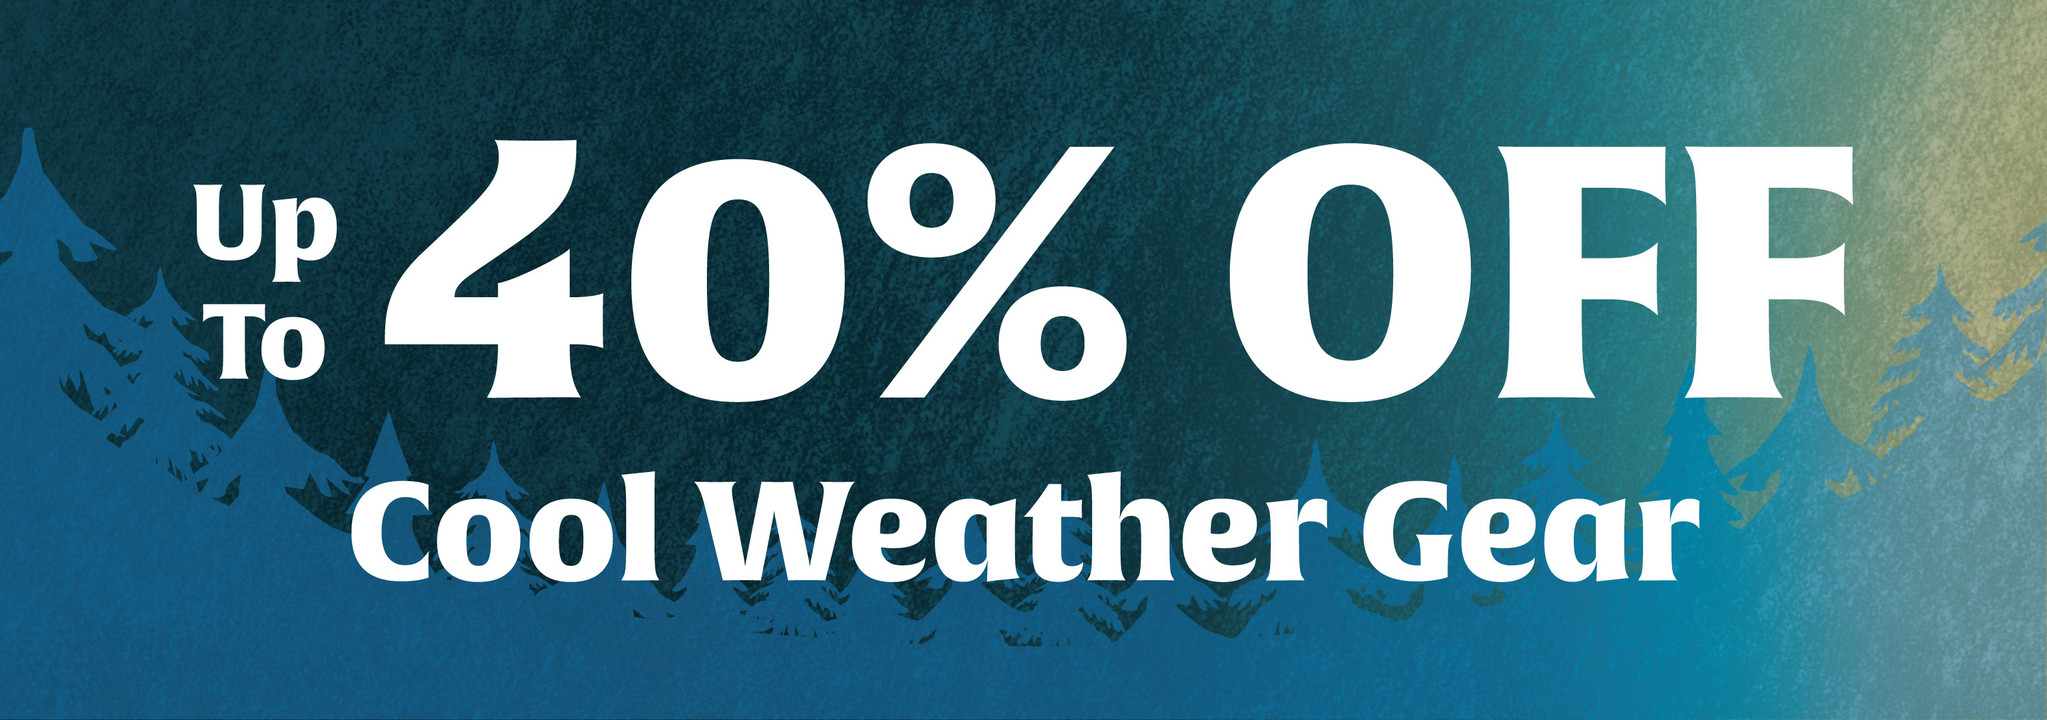 Spring Clearance Sale - up to 40% Off Cool Weather Gear